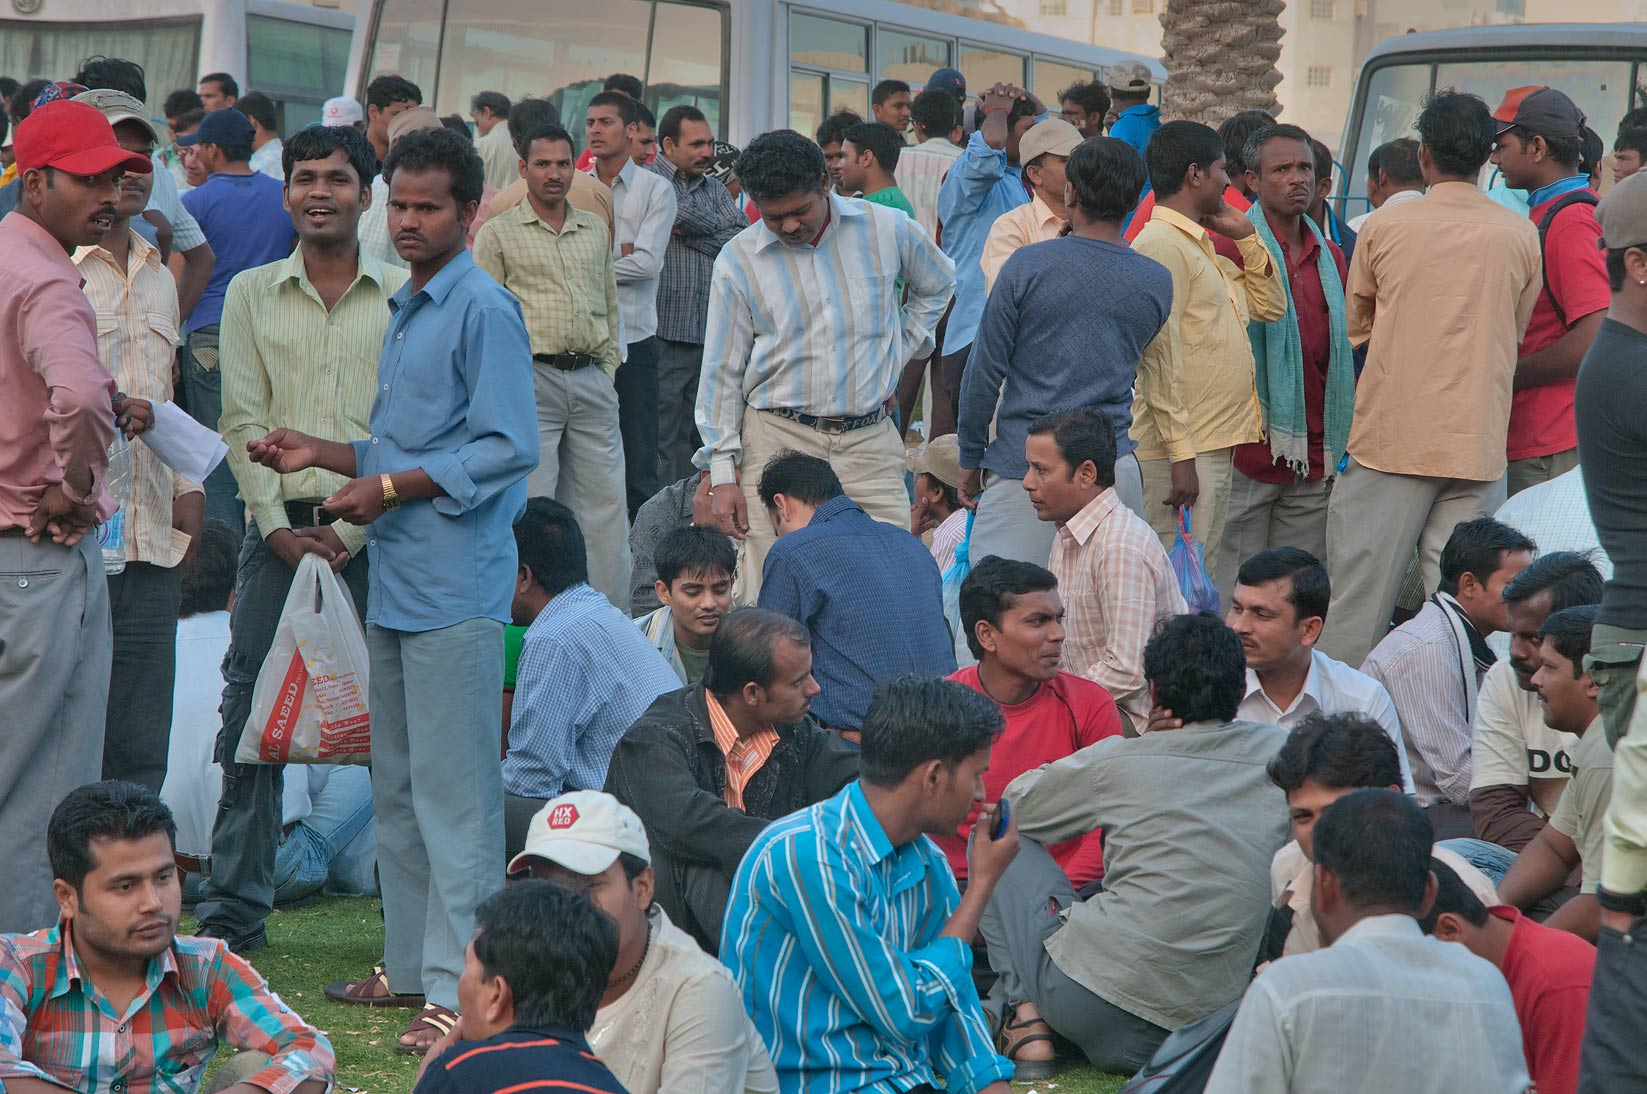 Migrant workers gathering near Central Bus Station Al Ghanim on Friday. Doha, Qatar